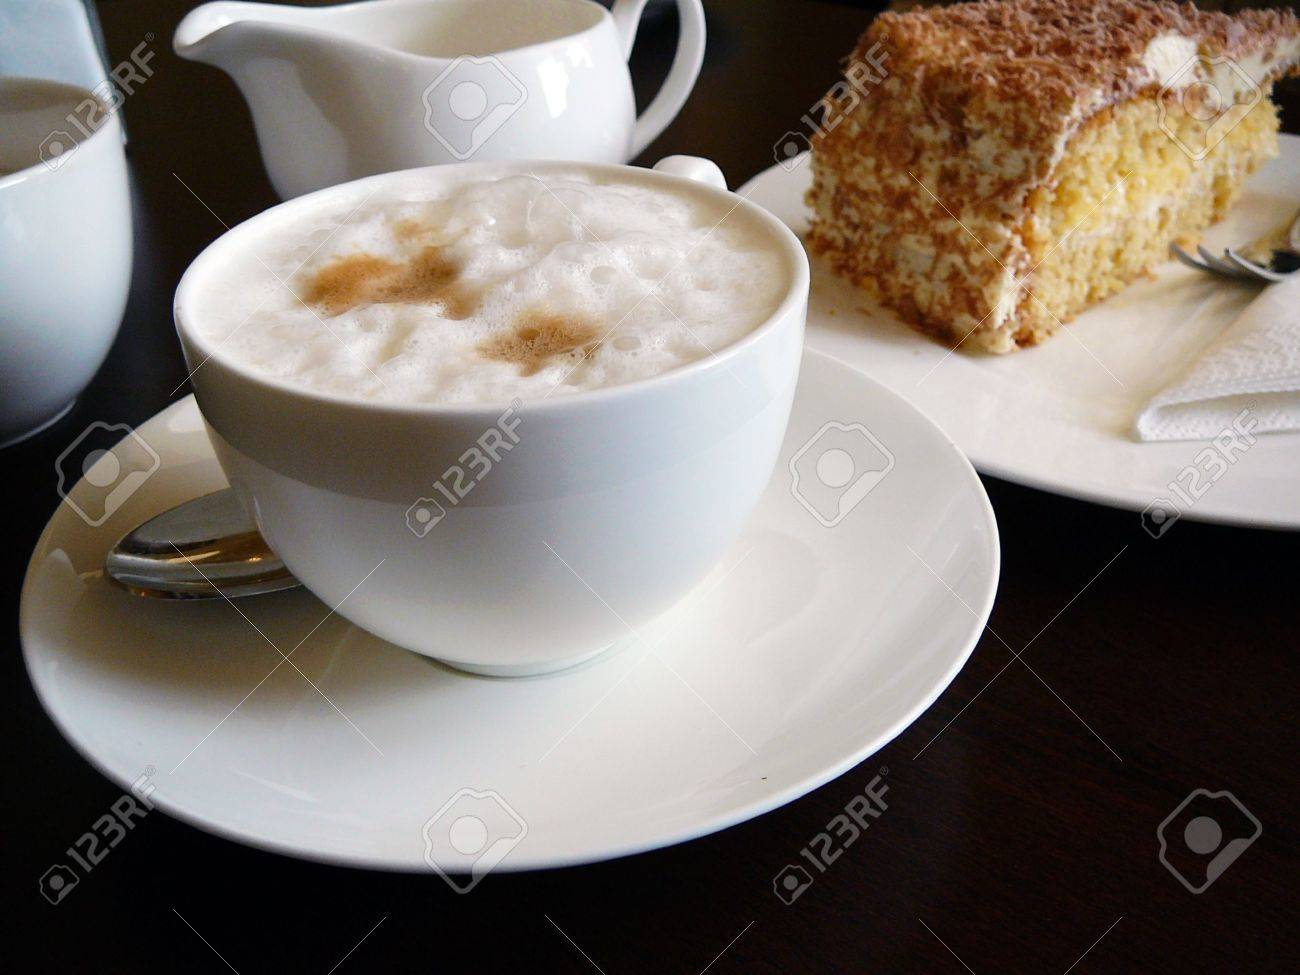 cappuccino and a fancy cake on a dark wooden table. in germany, this type of meal is often enjoyed in the afternoon, about 4 o'clock. Stock Photo - 772178